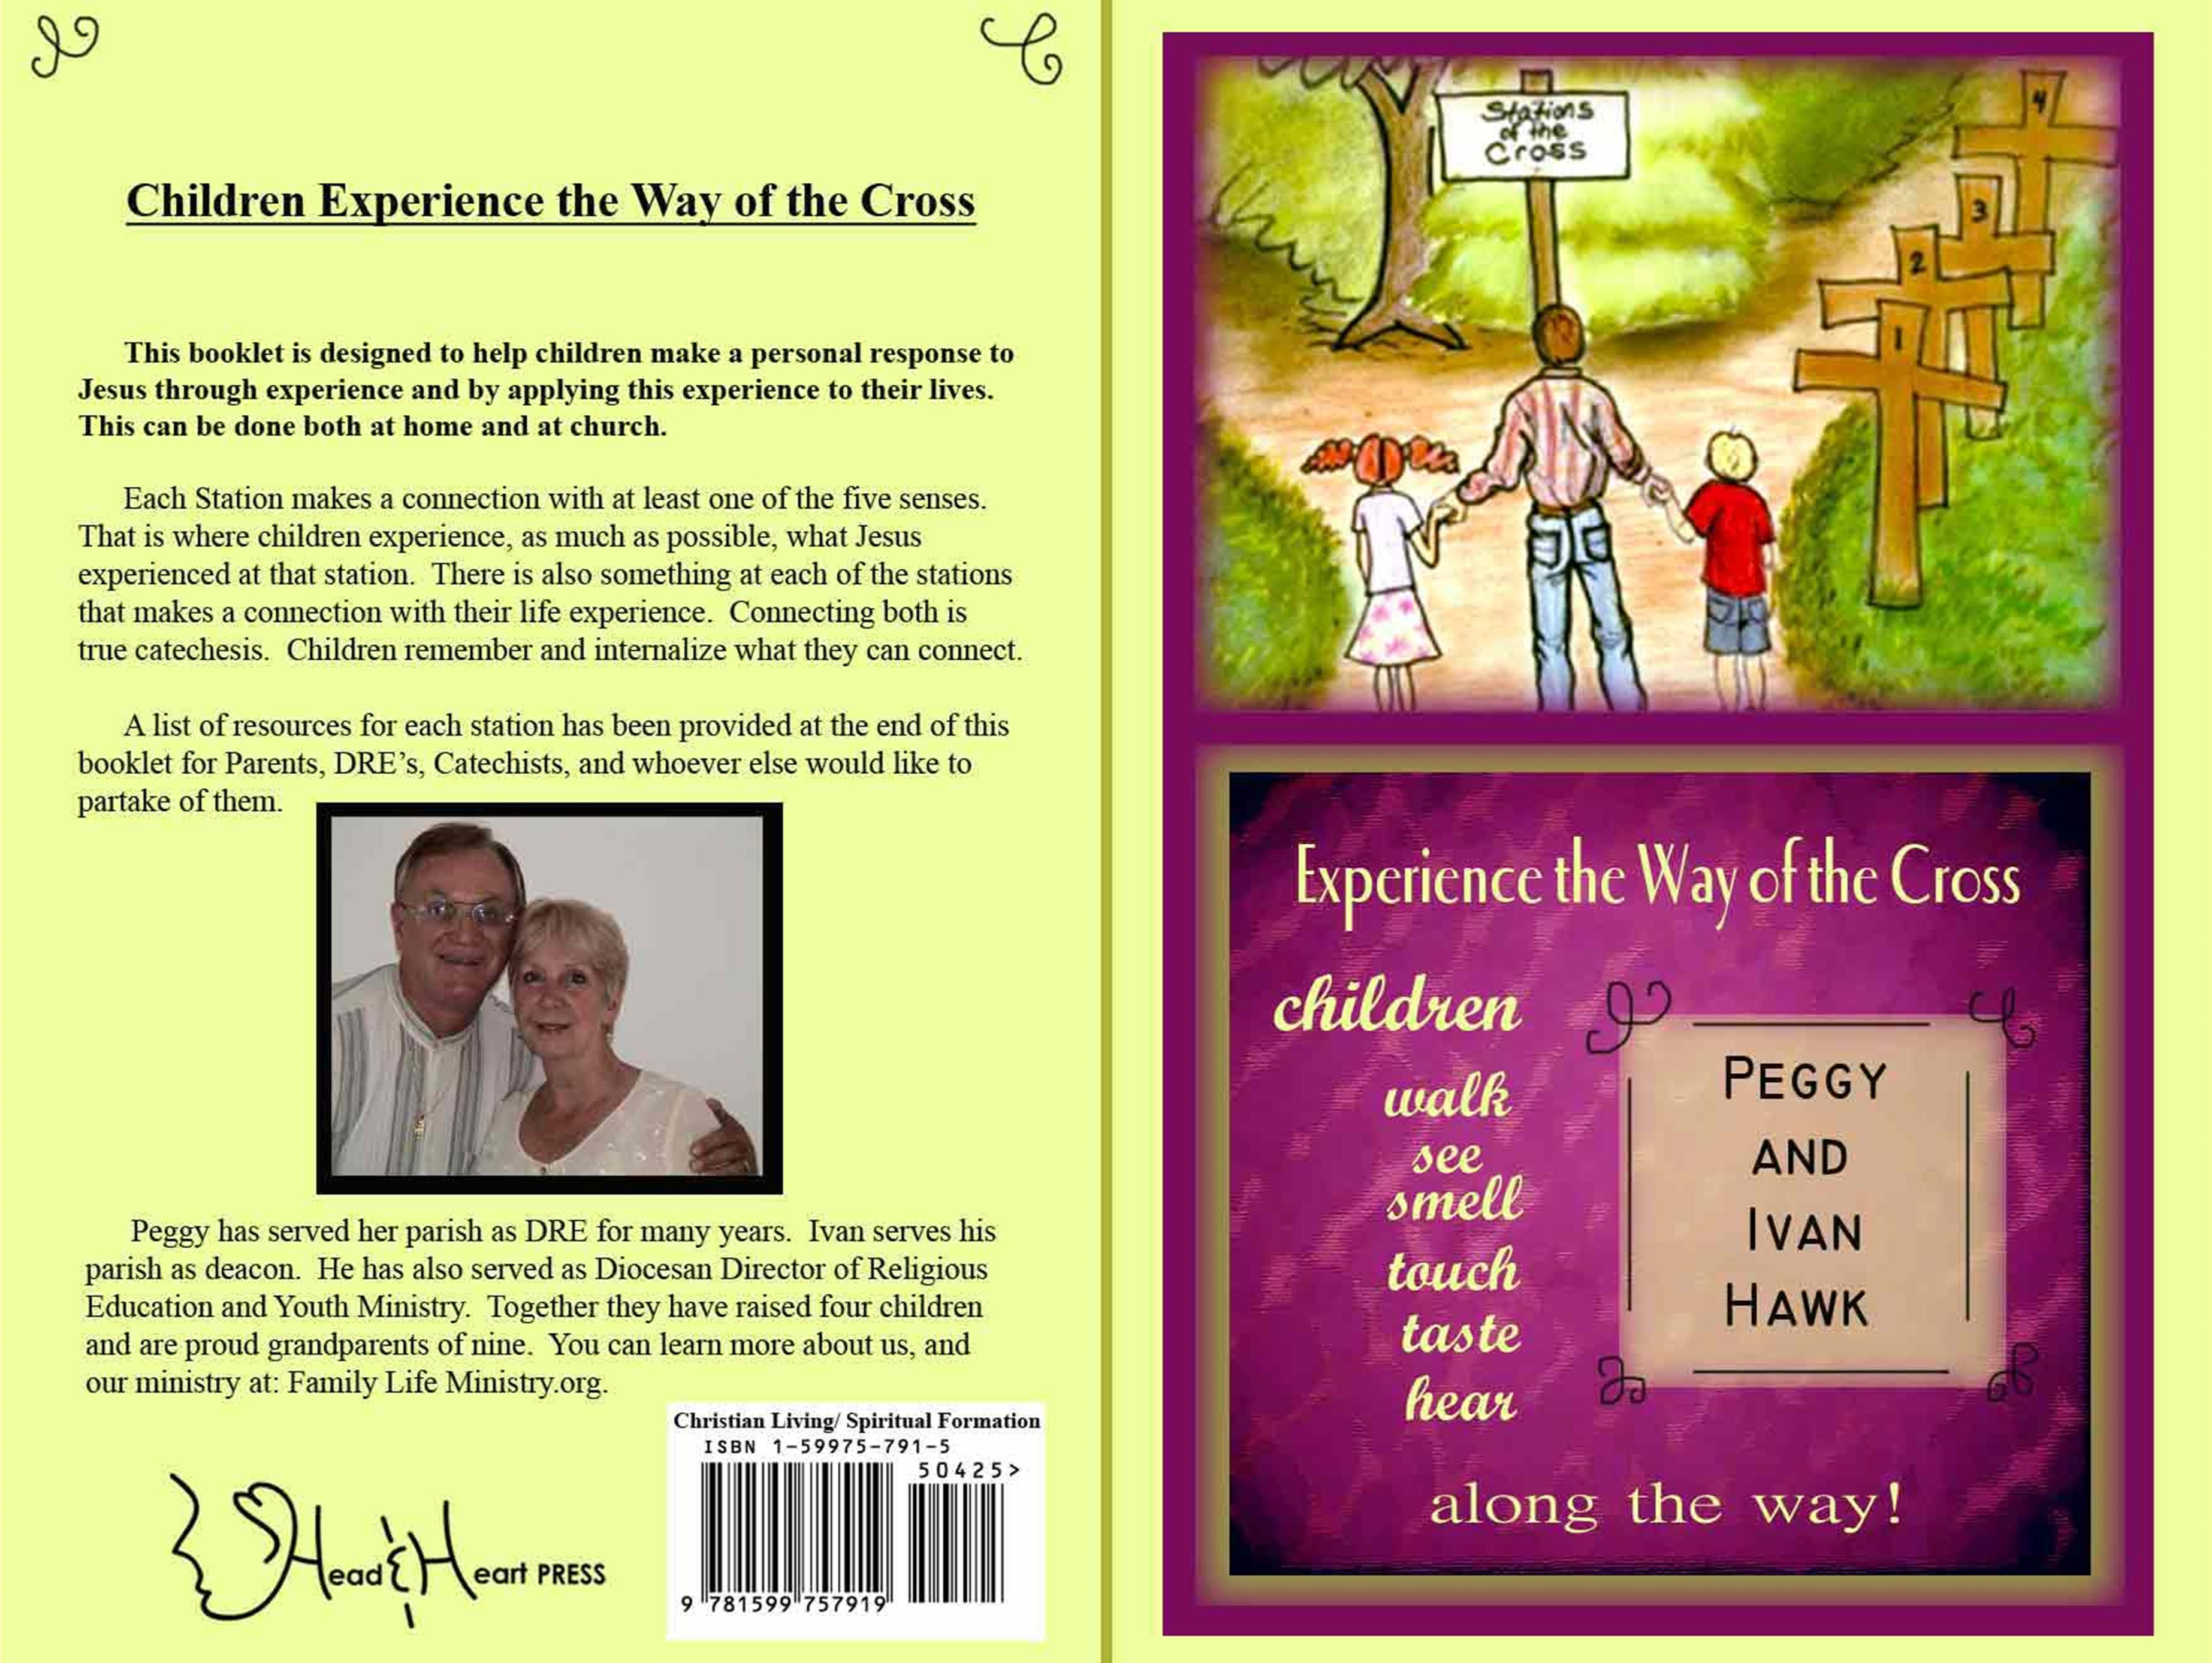 Experience the way of the cross children walk see smell touch experience the way of the cross children walk see smell touch fandeluxe Images